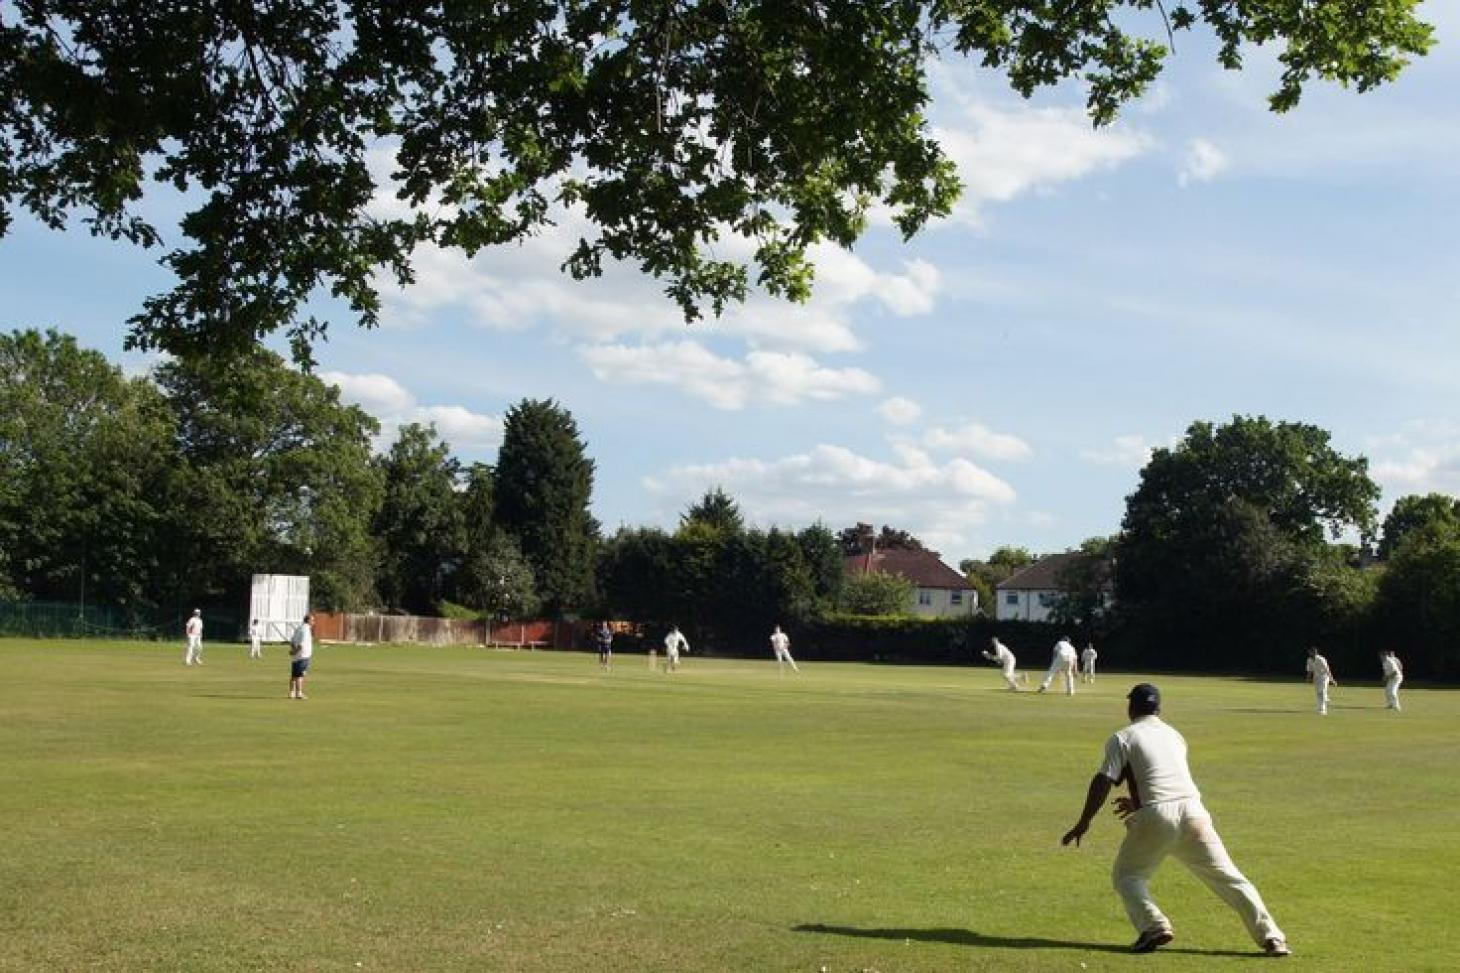 Downham and Bellingham Cricket Club Full size | Grass cricket facilities